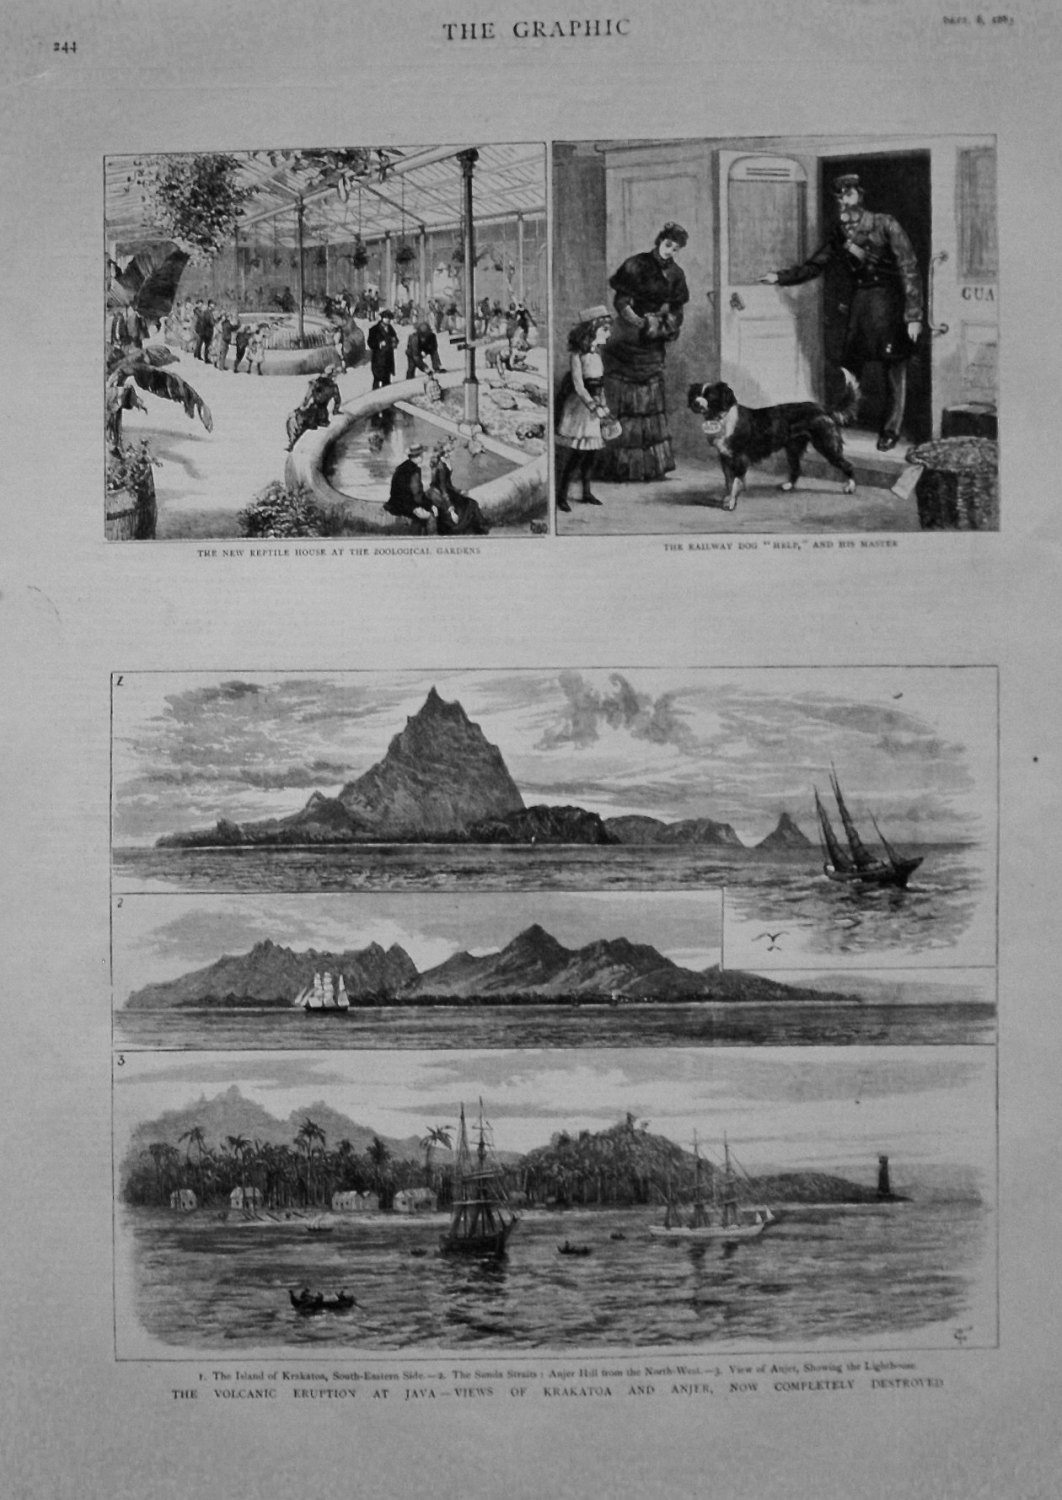 Volcanic Eruption at Java - Views of Krakatoa and Anger, now Completely Des